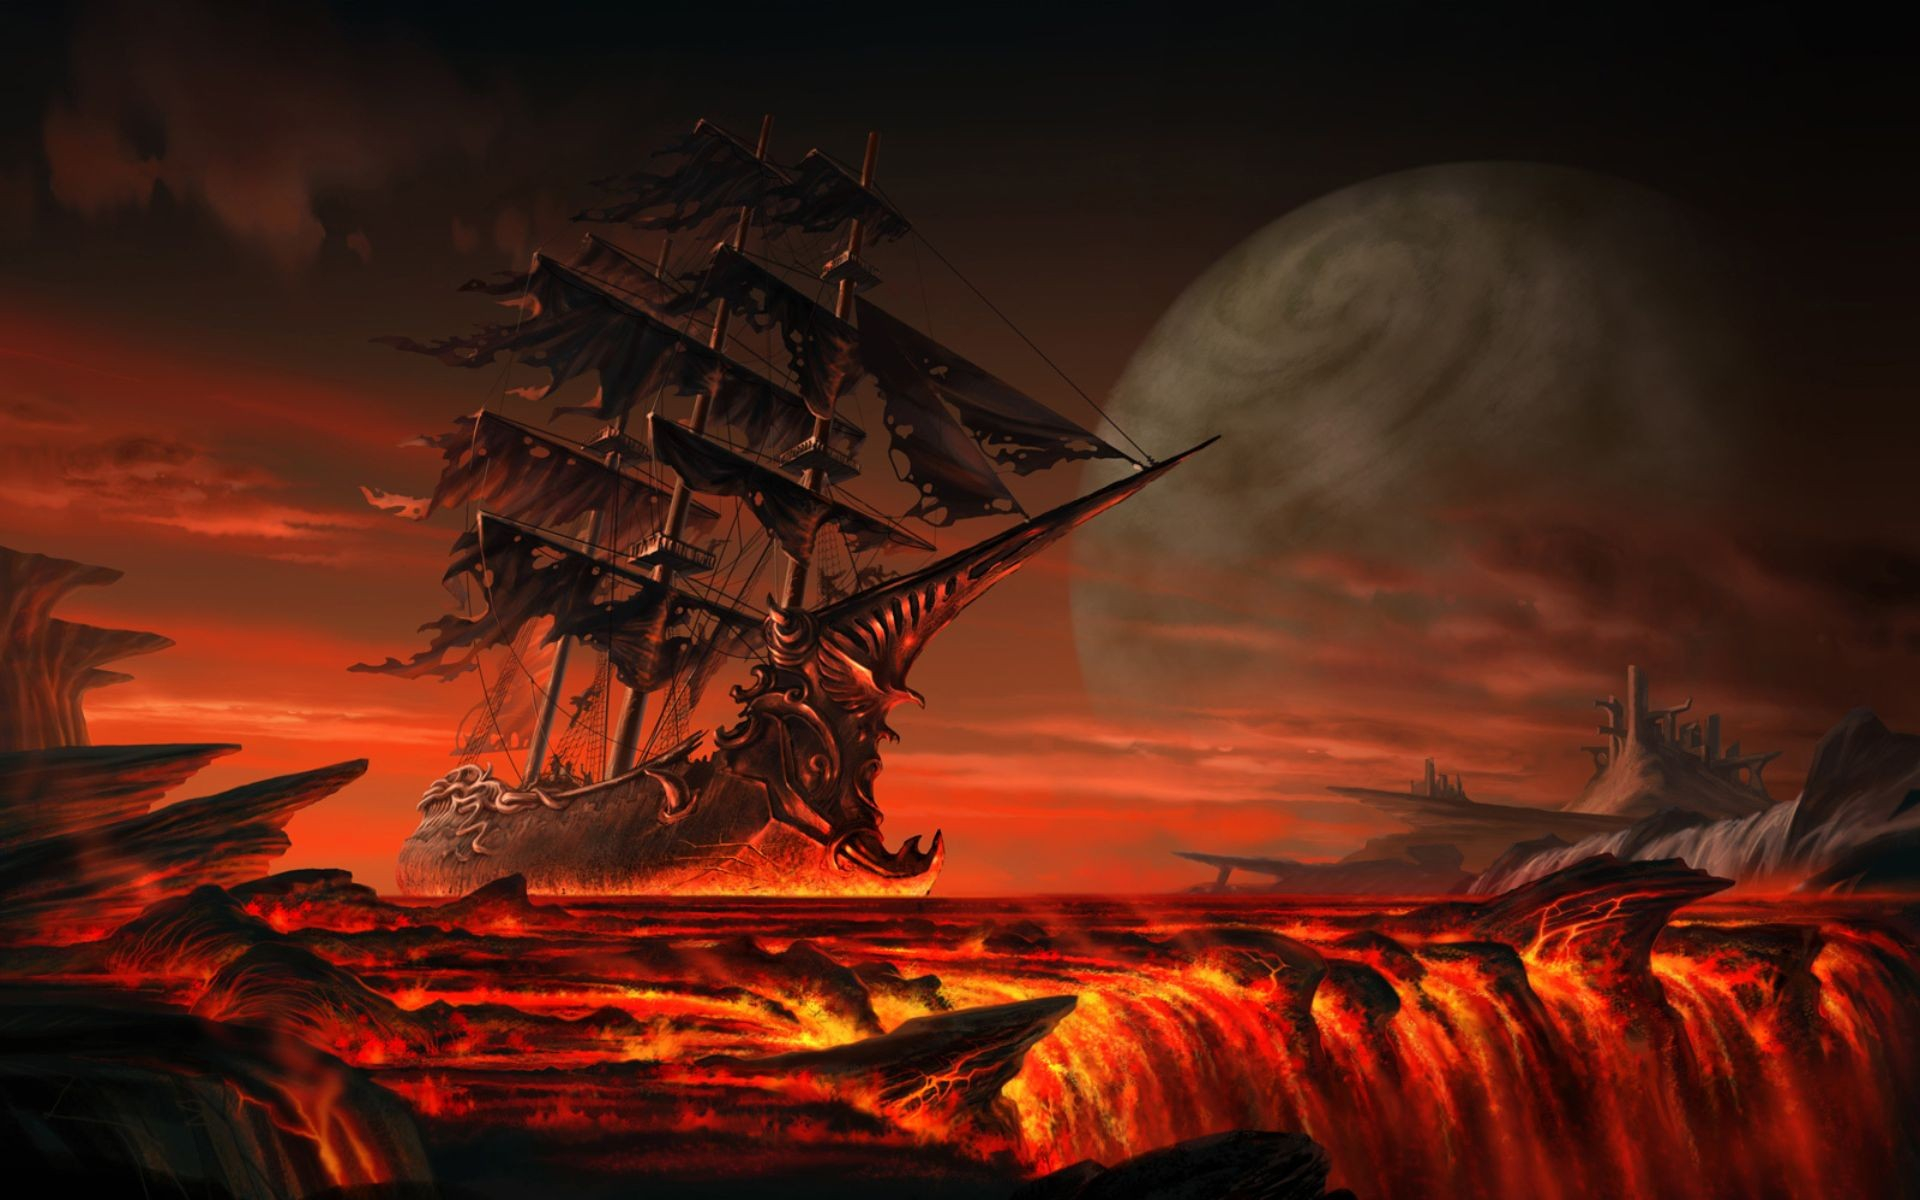 Sail to the end of the world full hd wallpaper and background image fantasy ship wallpaper voltagebd Images